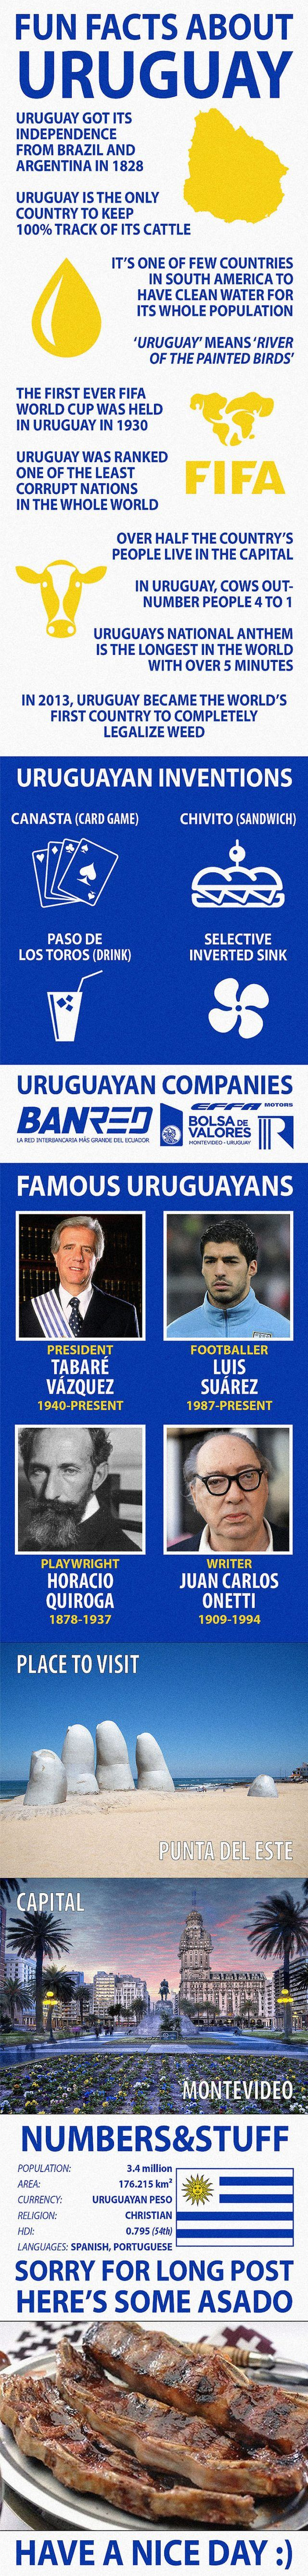 Fun facts about Uruguay - Imgur